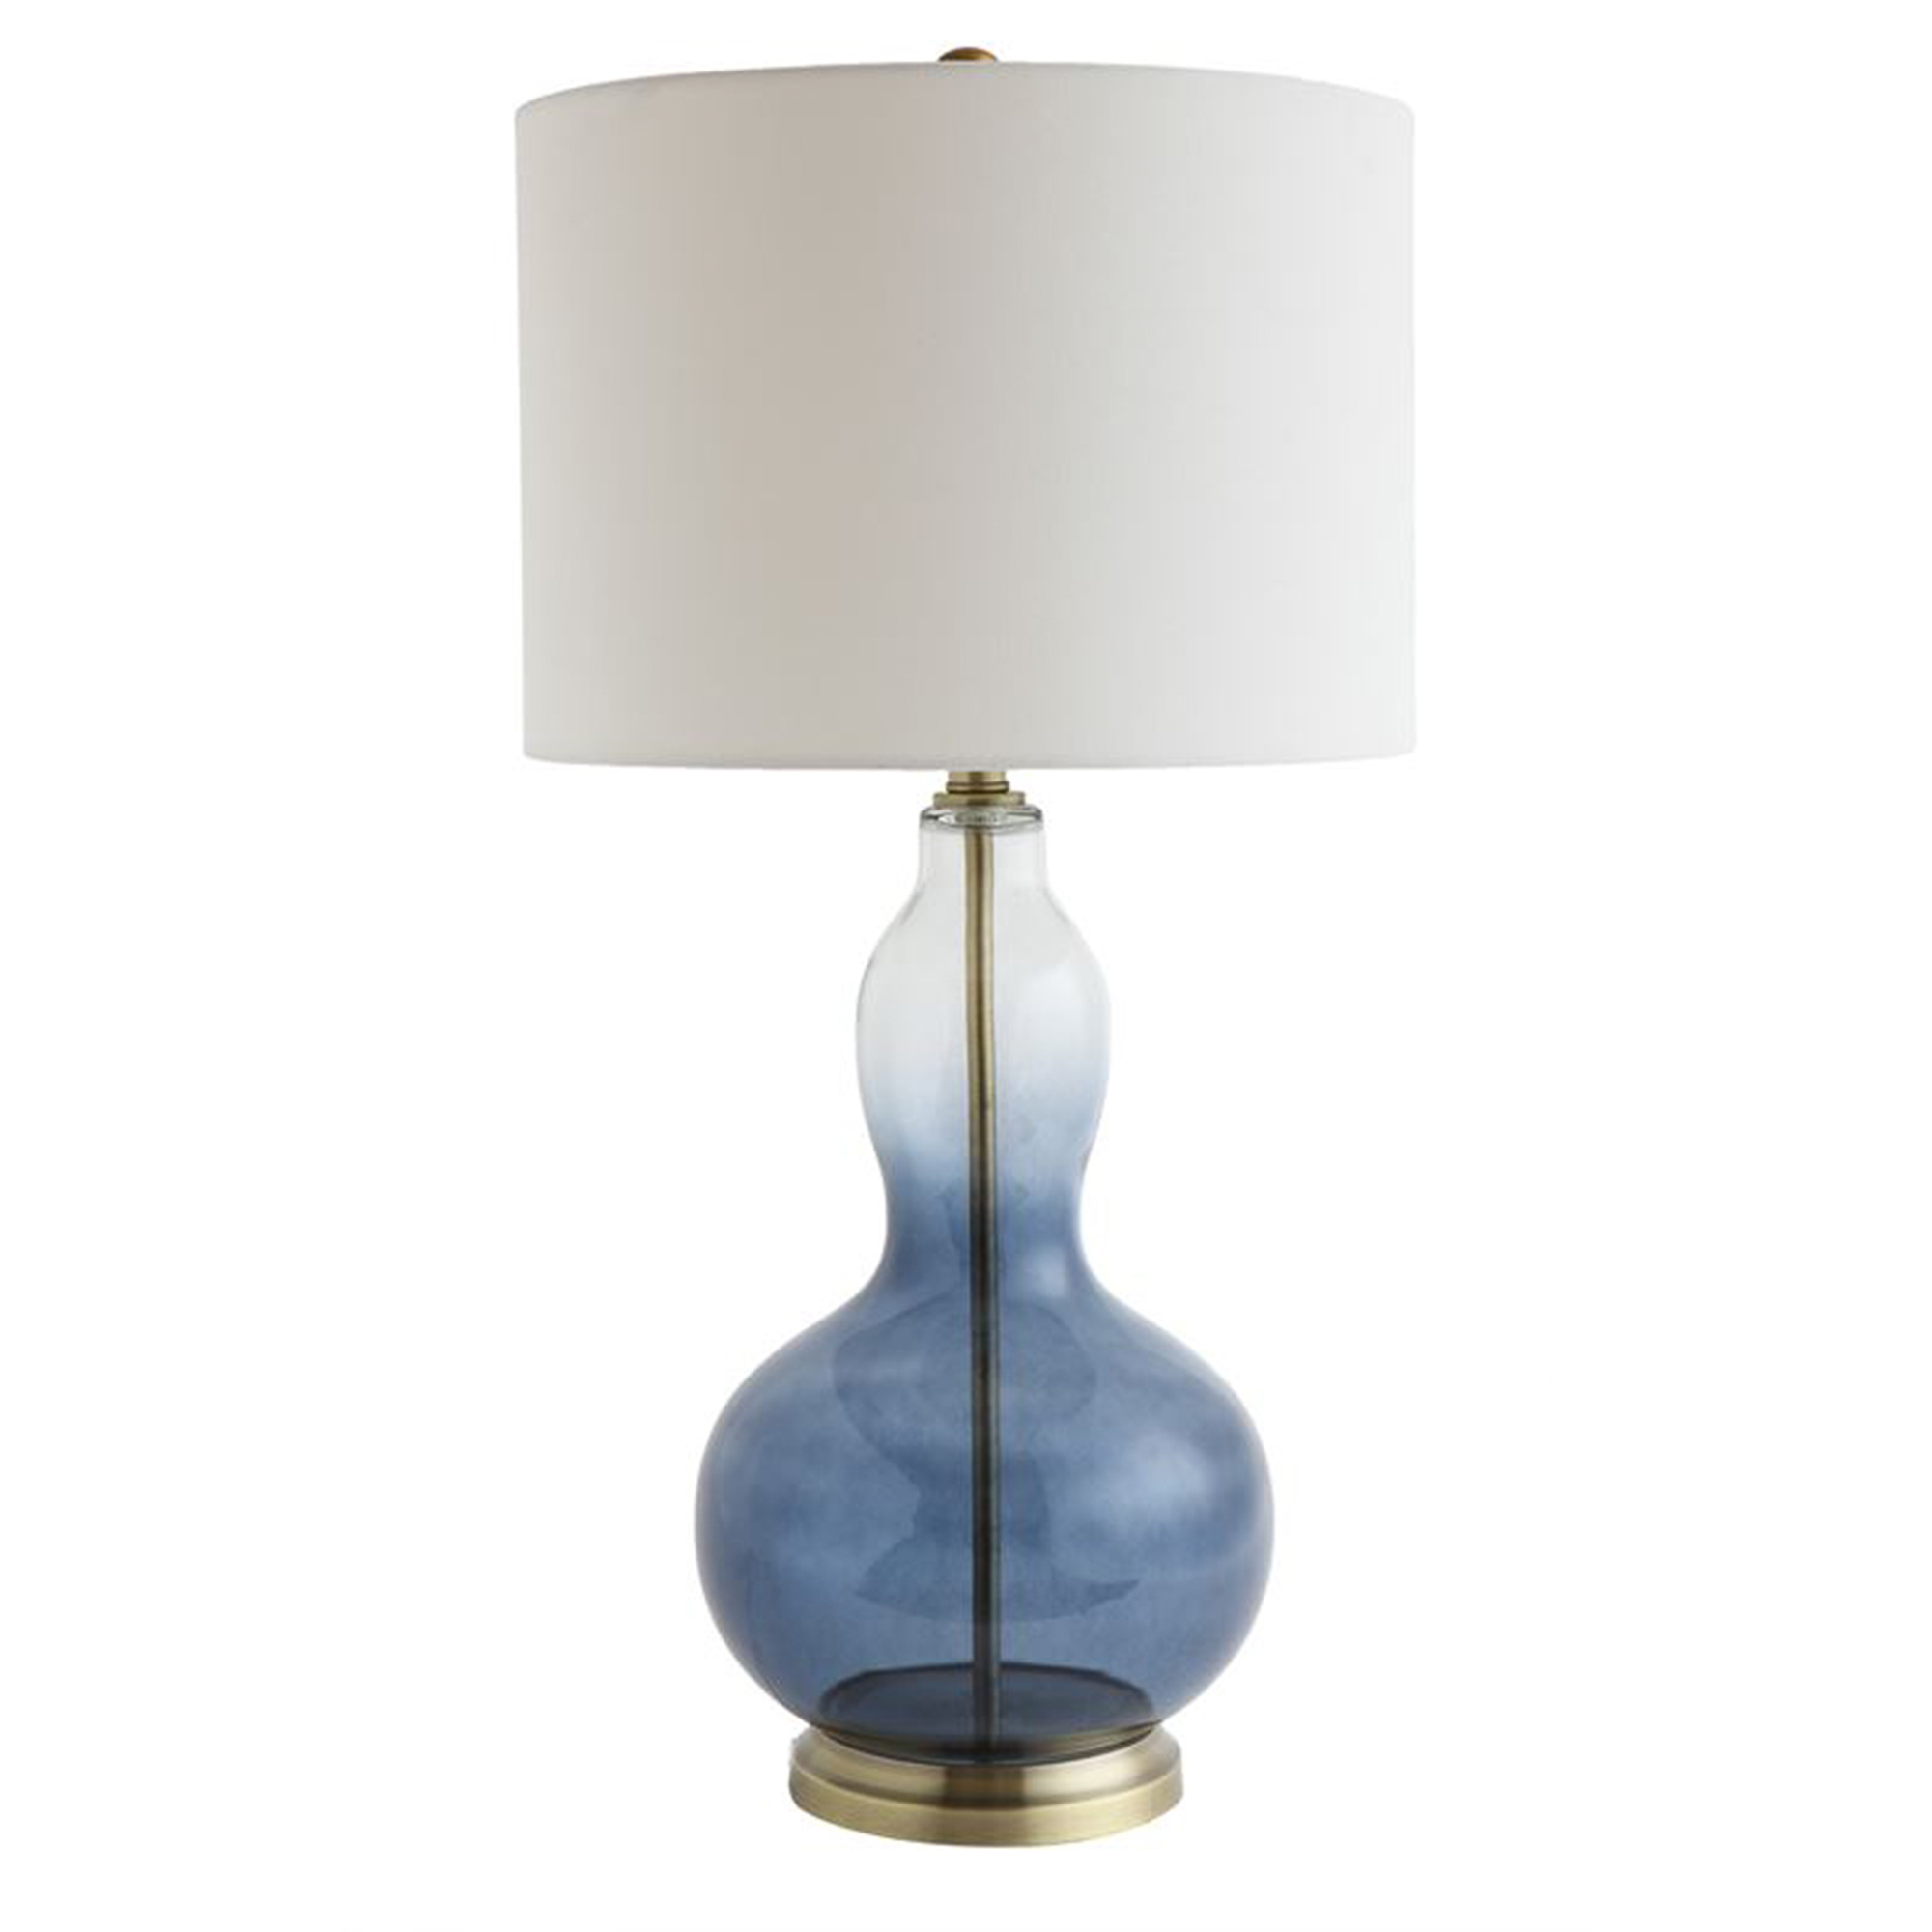 Blue Glass Table Lamp with White Shade